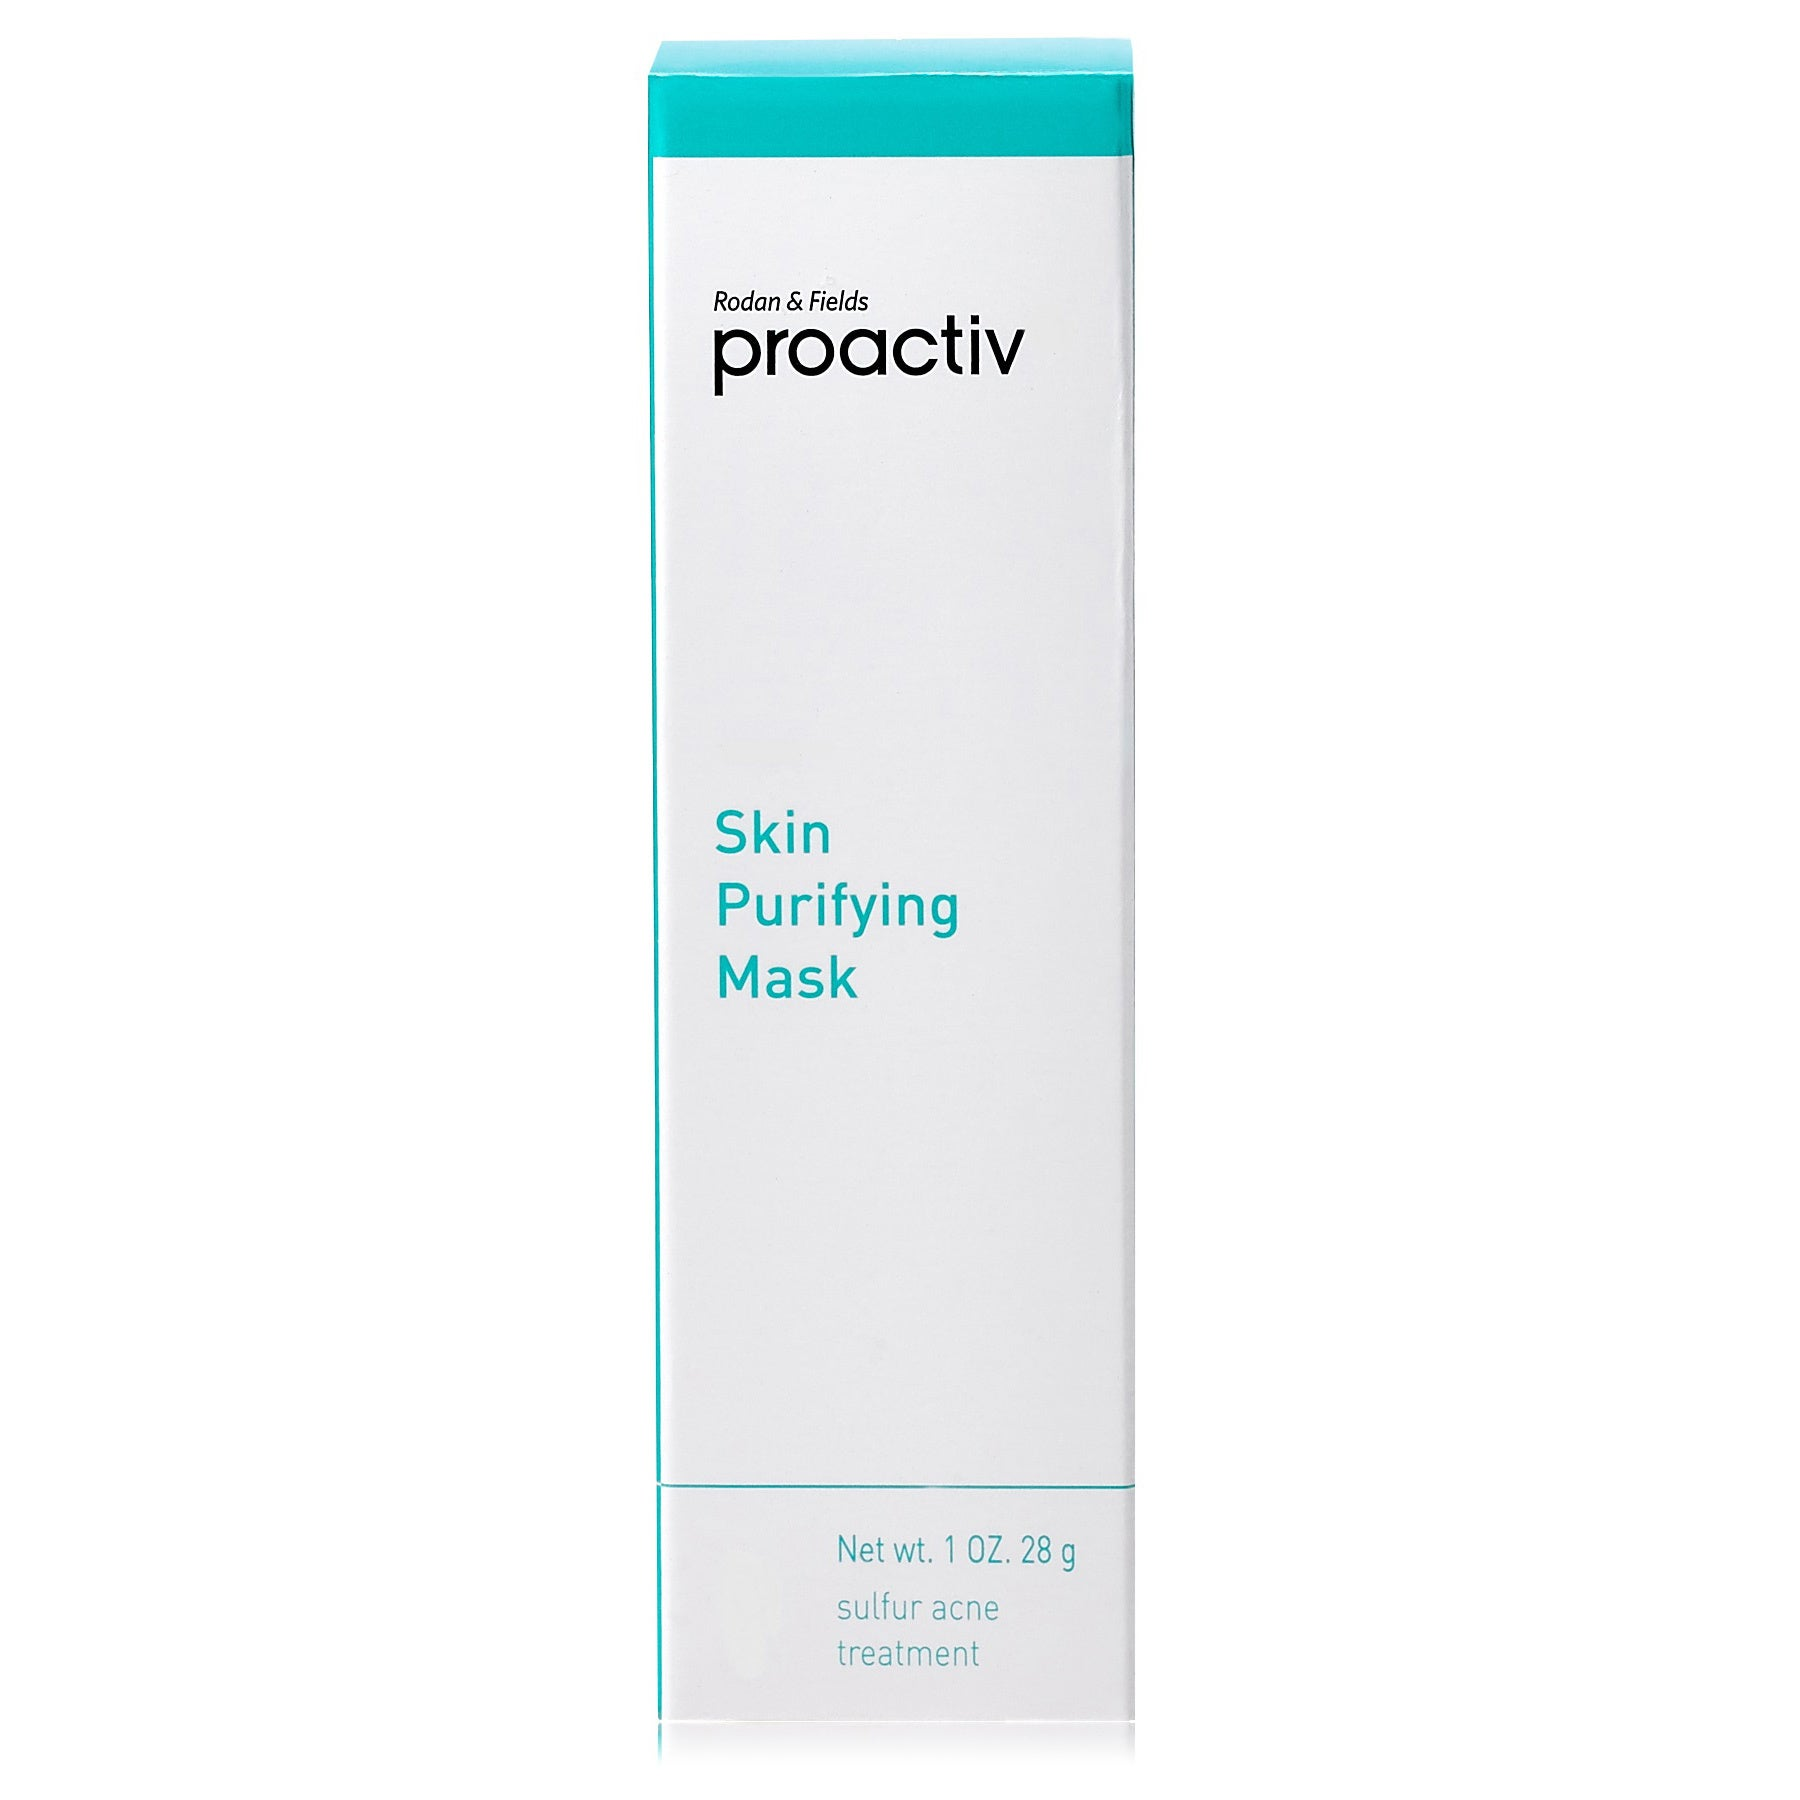 Proactiv+ 1-ounce Skin Purifying Mask, Ivory cream